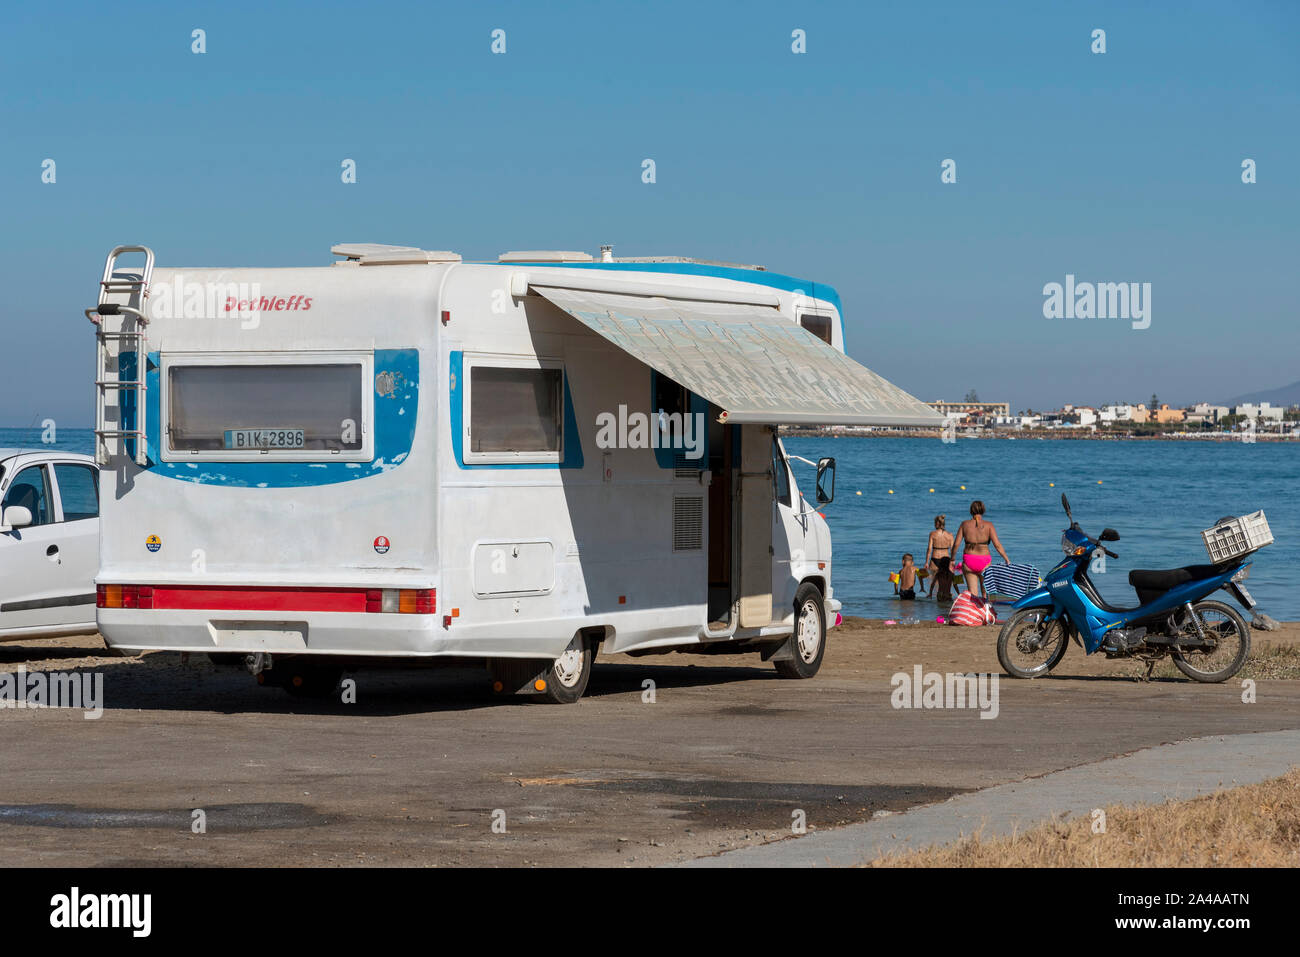 Gouves, Crete, Greece. October 2019. An old motorhome on the beach at Kato Gouves on an area which had been a US military base near Heraklion, Crete. Stock Photo